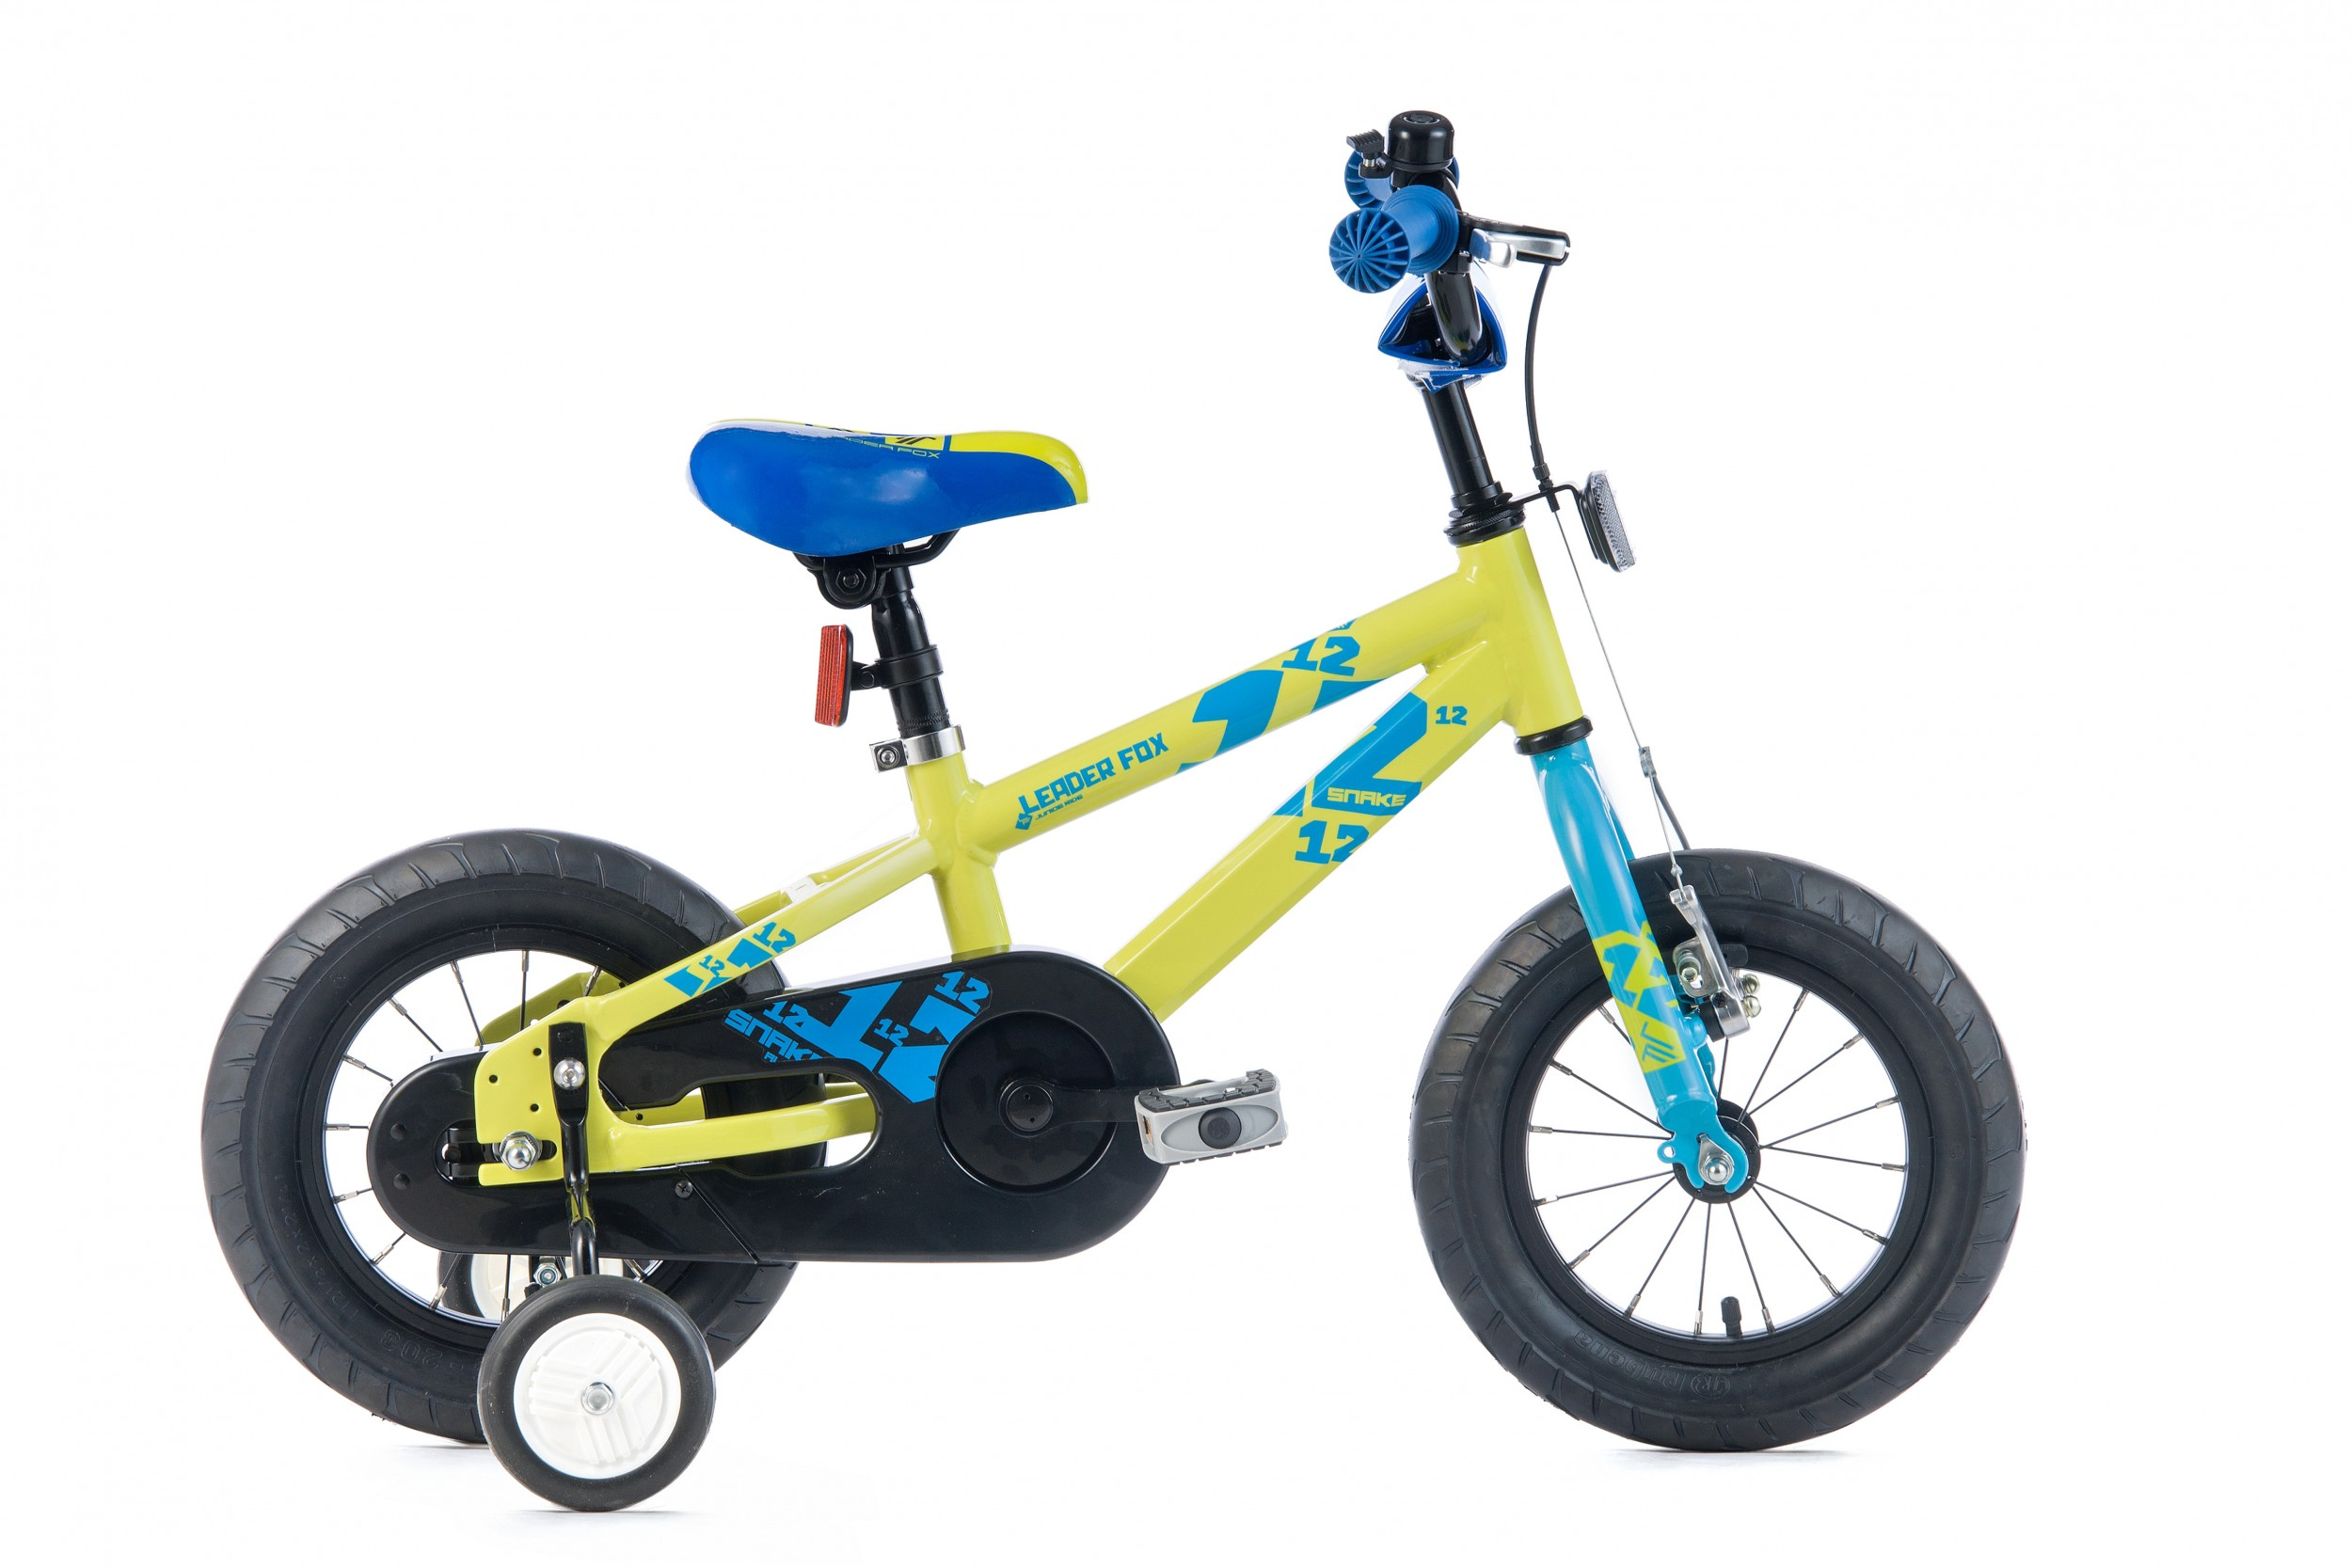 Leader Fox Snake Boys Bicycle 12 Inch 18cm - Green